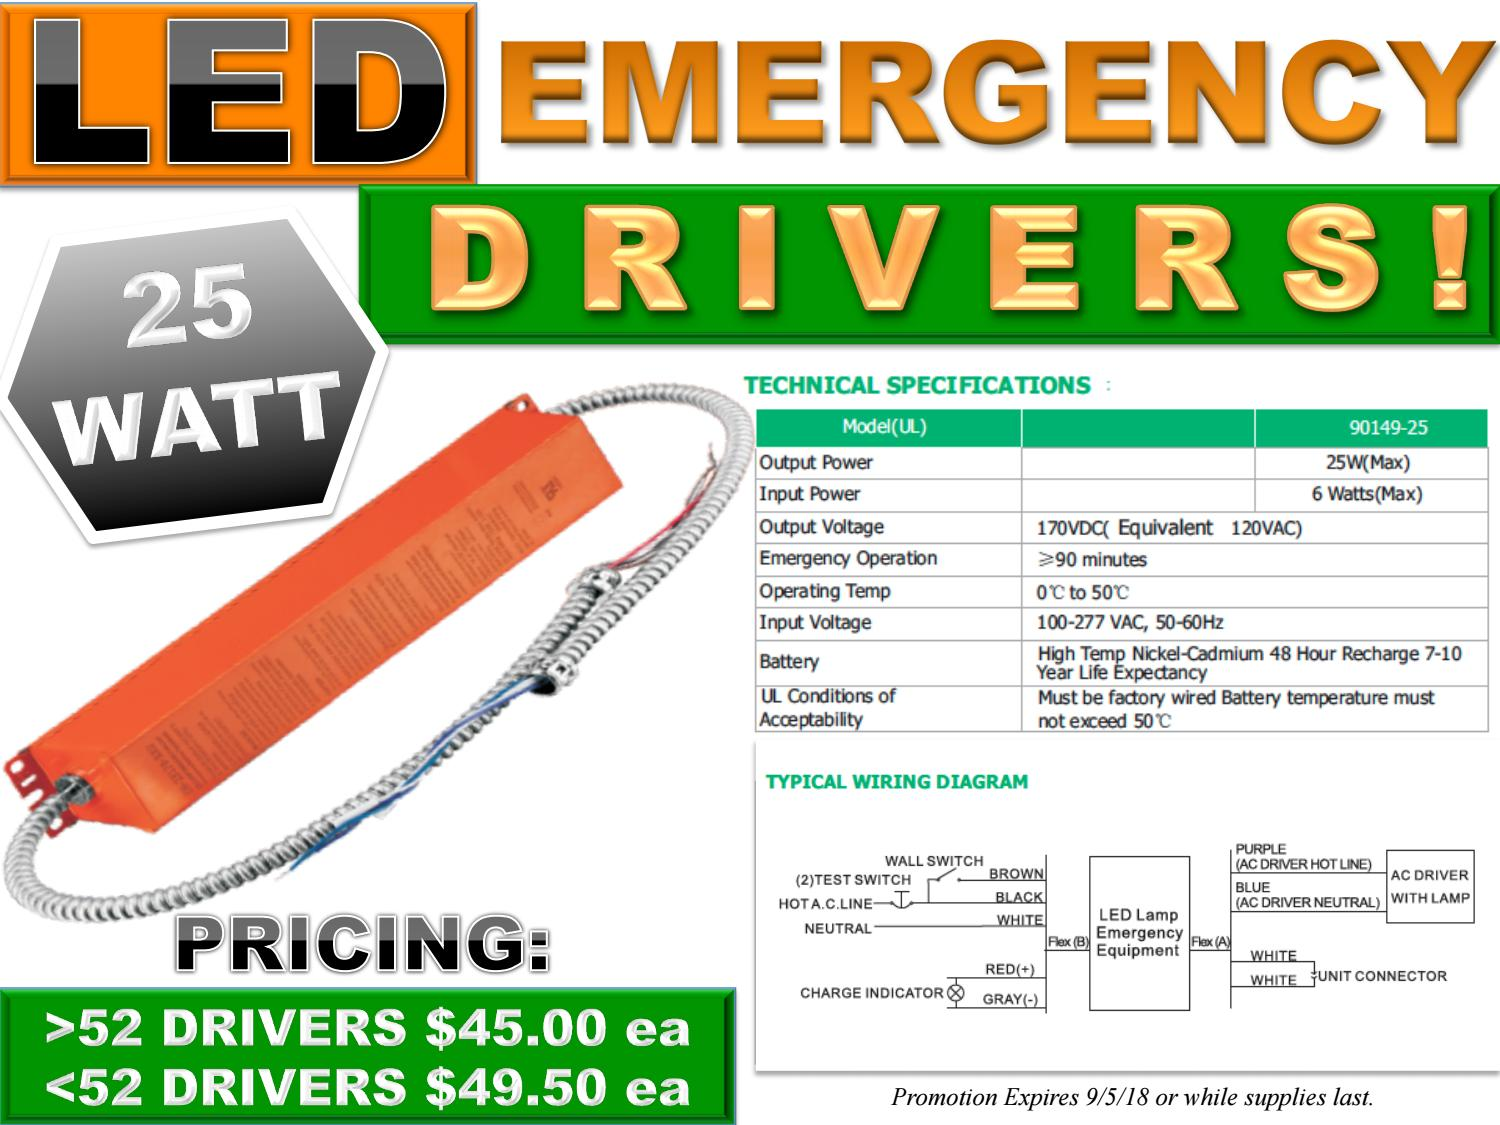 New 25 Watt Led Emergency Drivers On Sale Now By Lighting And Lights Ac Wiring Diagram Power Technologies Issuu